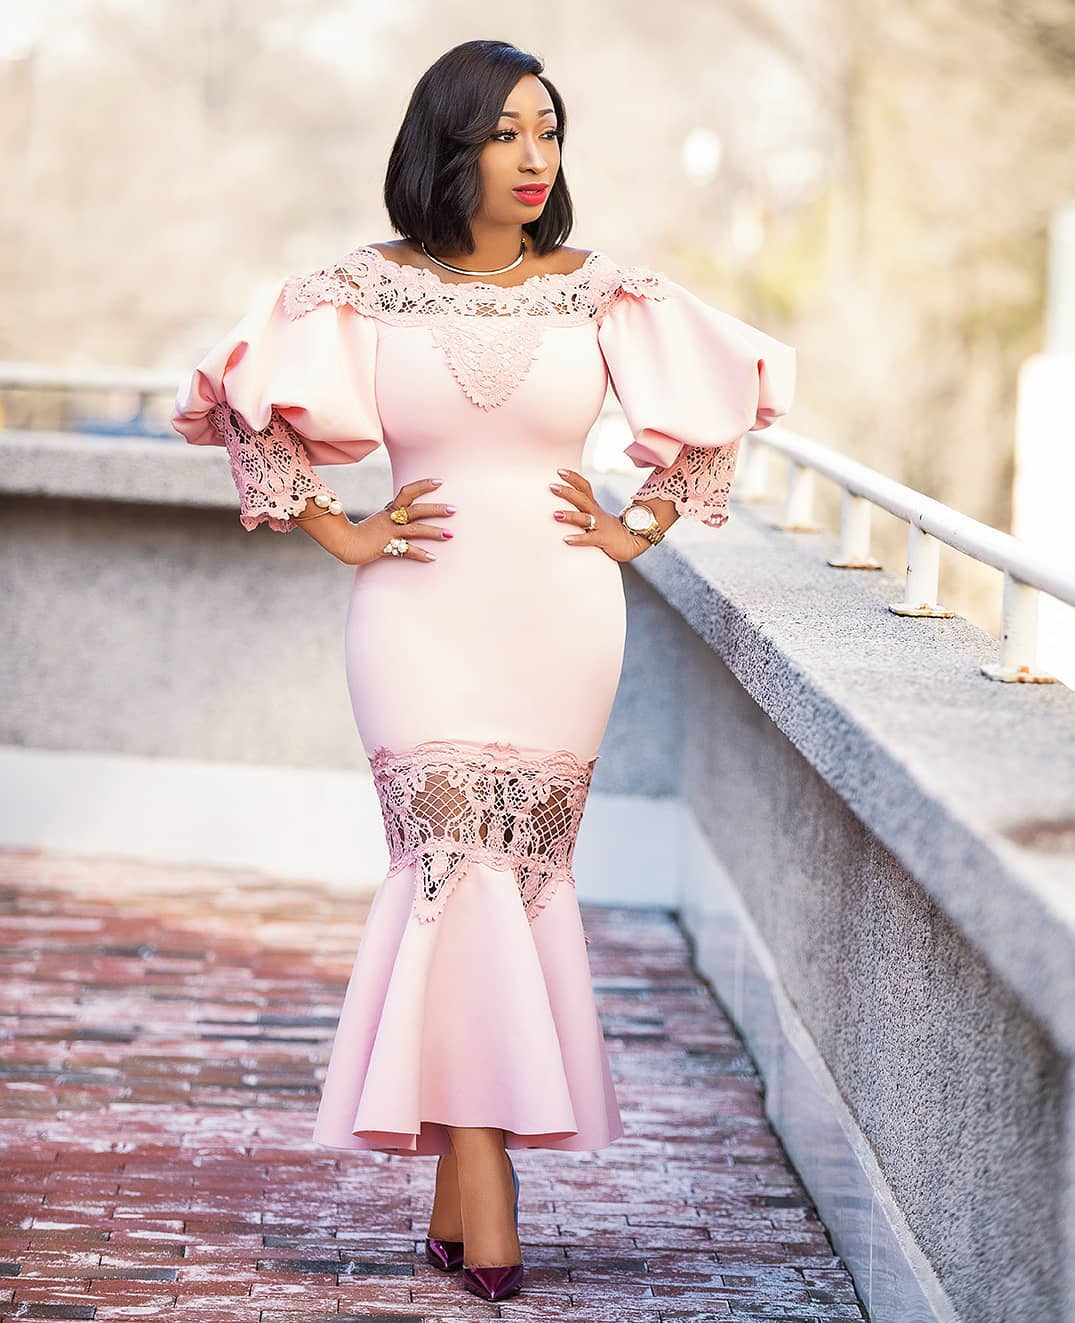 7 Stunning Reception Dress Ideas For The Fashion Forward Bride-To-Be